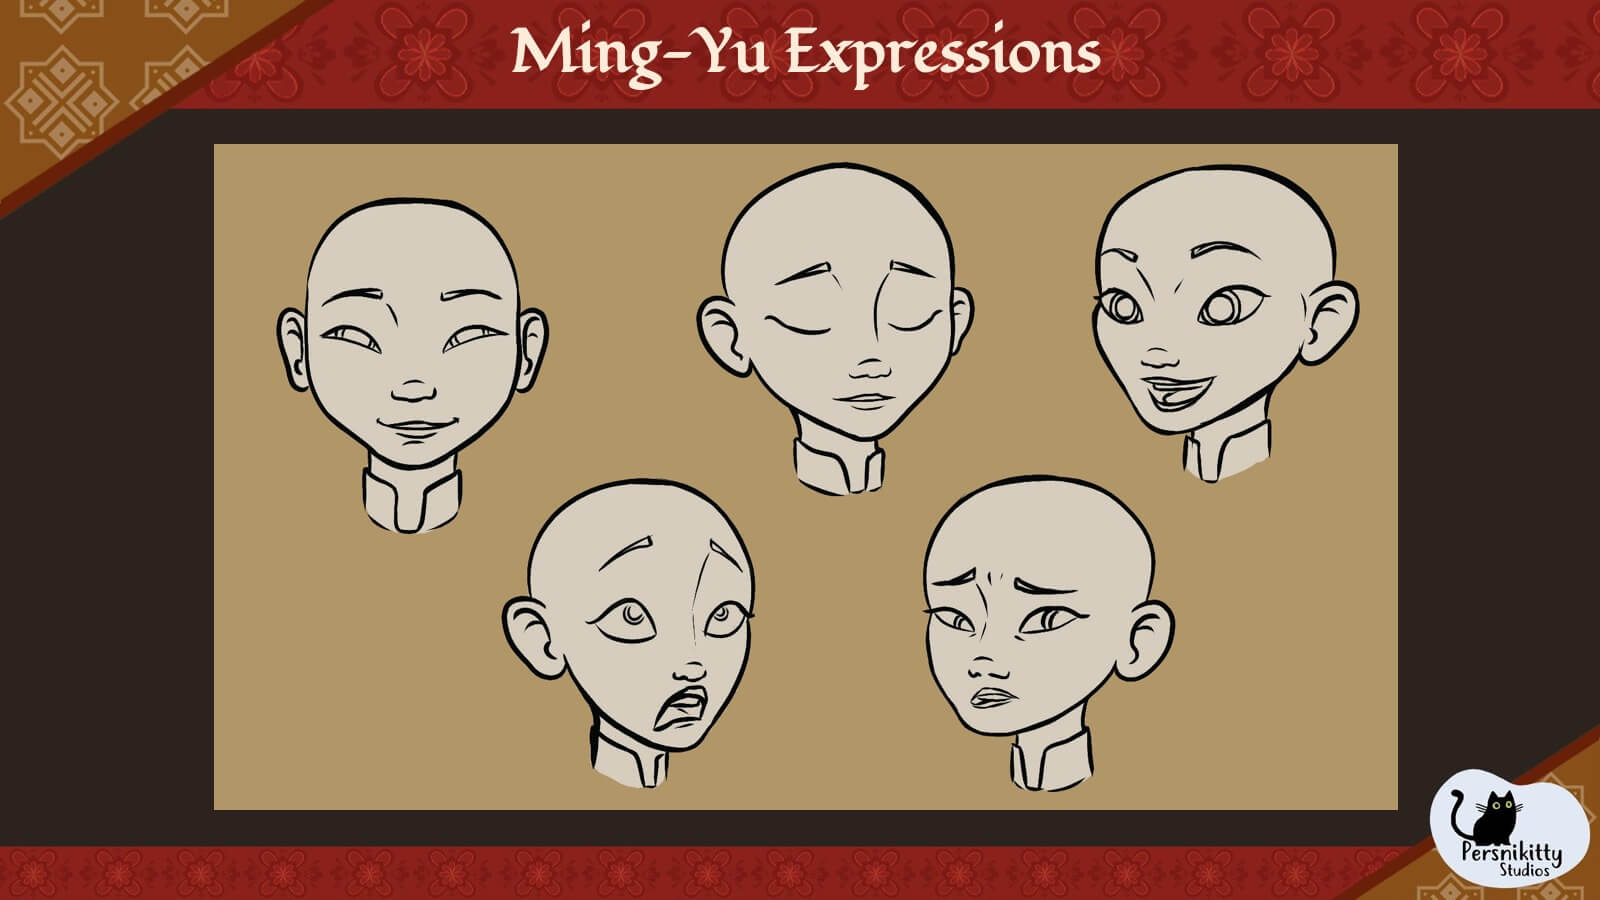 A slide displaying a variety of facial expressions for Ming.